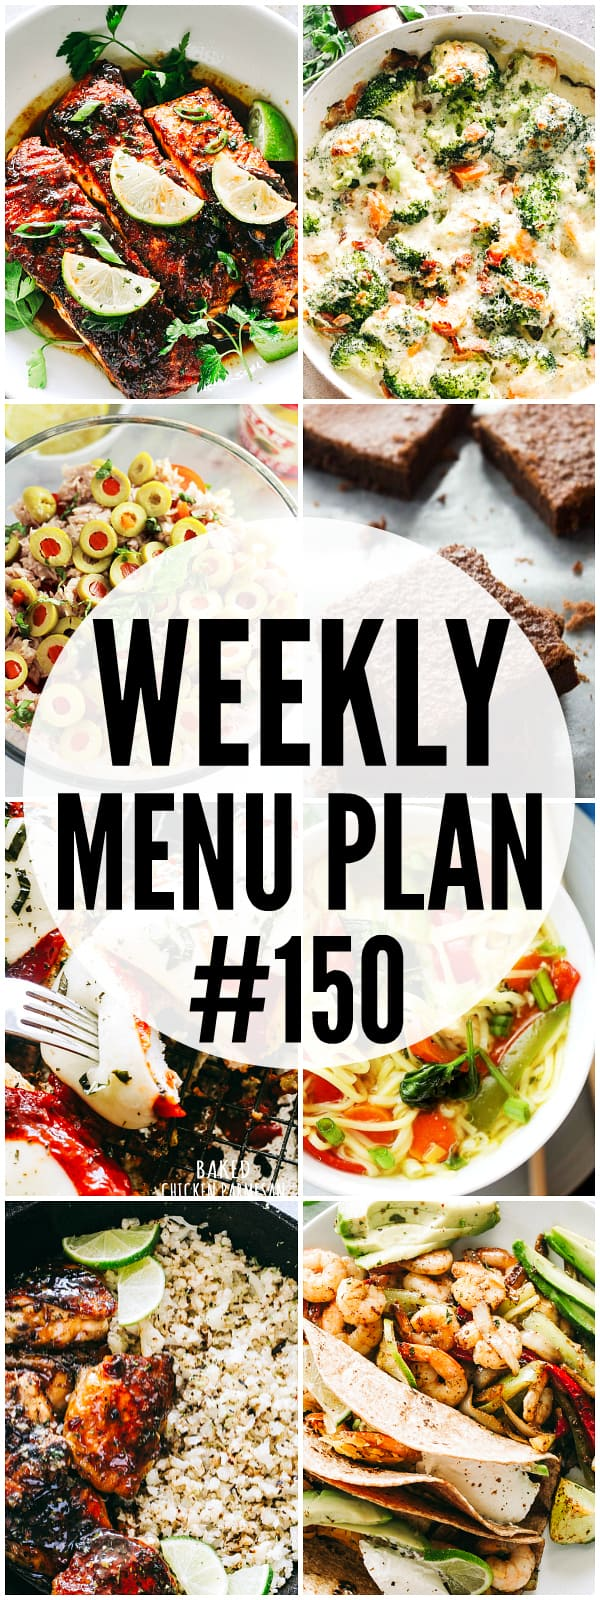 WEEKLY MENU PLAN (#150) – A delicious collection of dinner, side dish and dessert recipes to help you plan your weekly menu and make life easier for you!